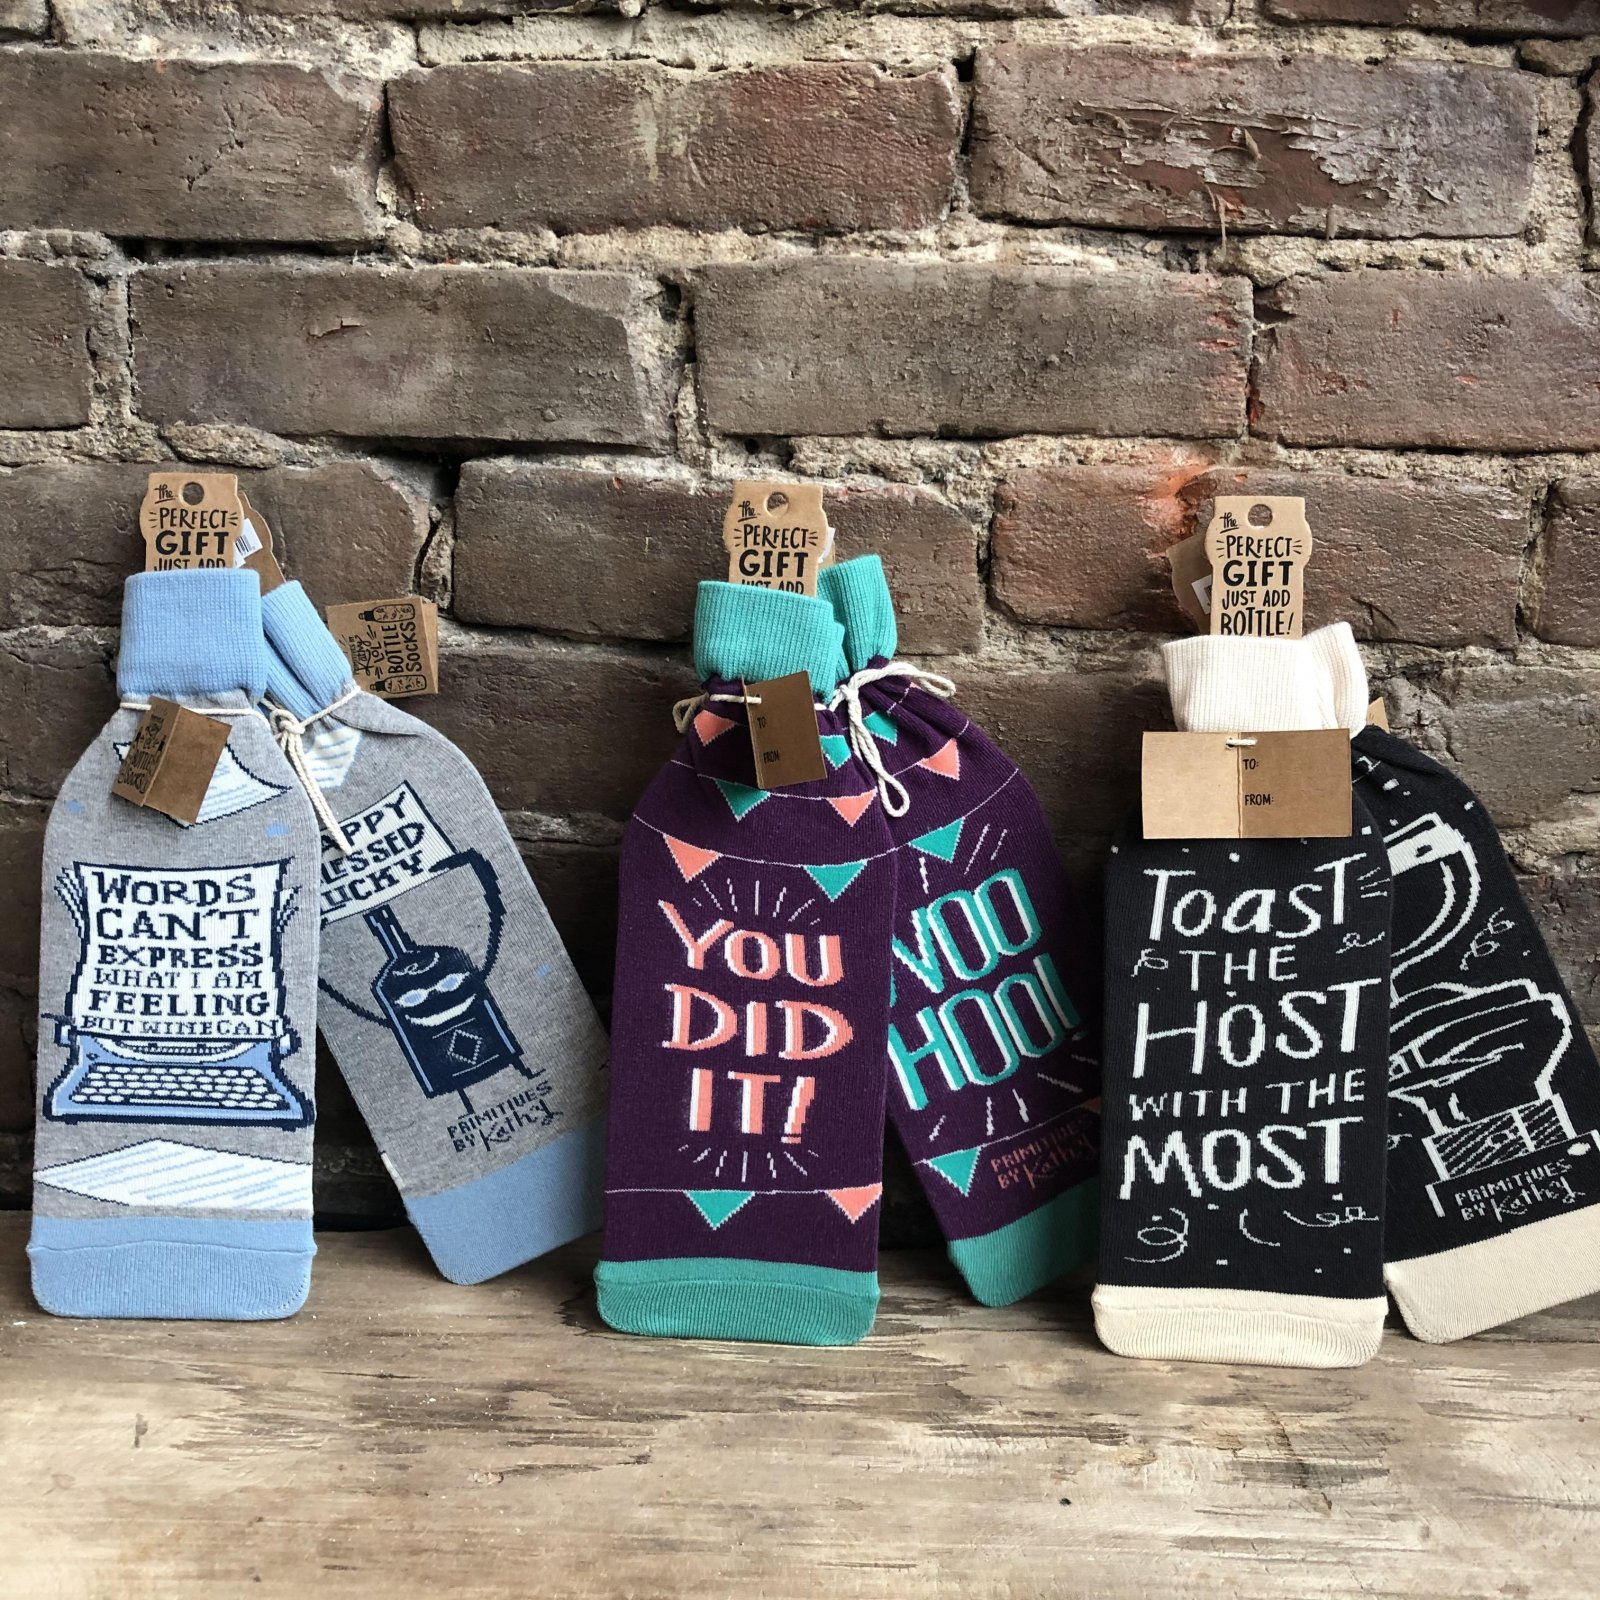 Bottle Sock - Words Cannot Express / You Did It / Toast The Host